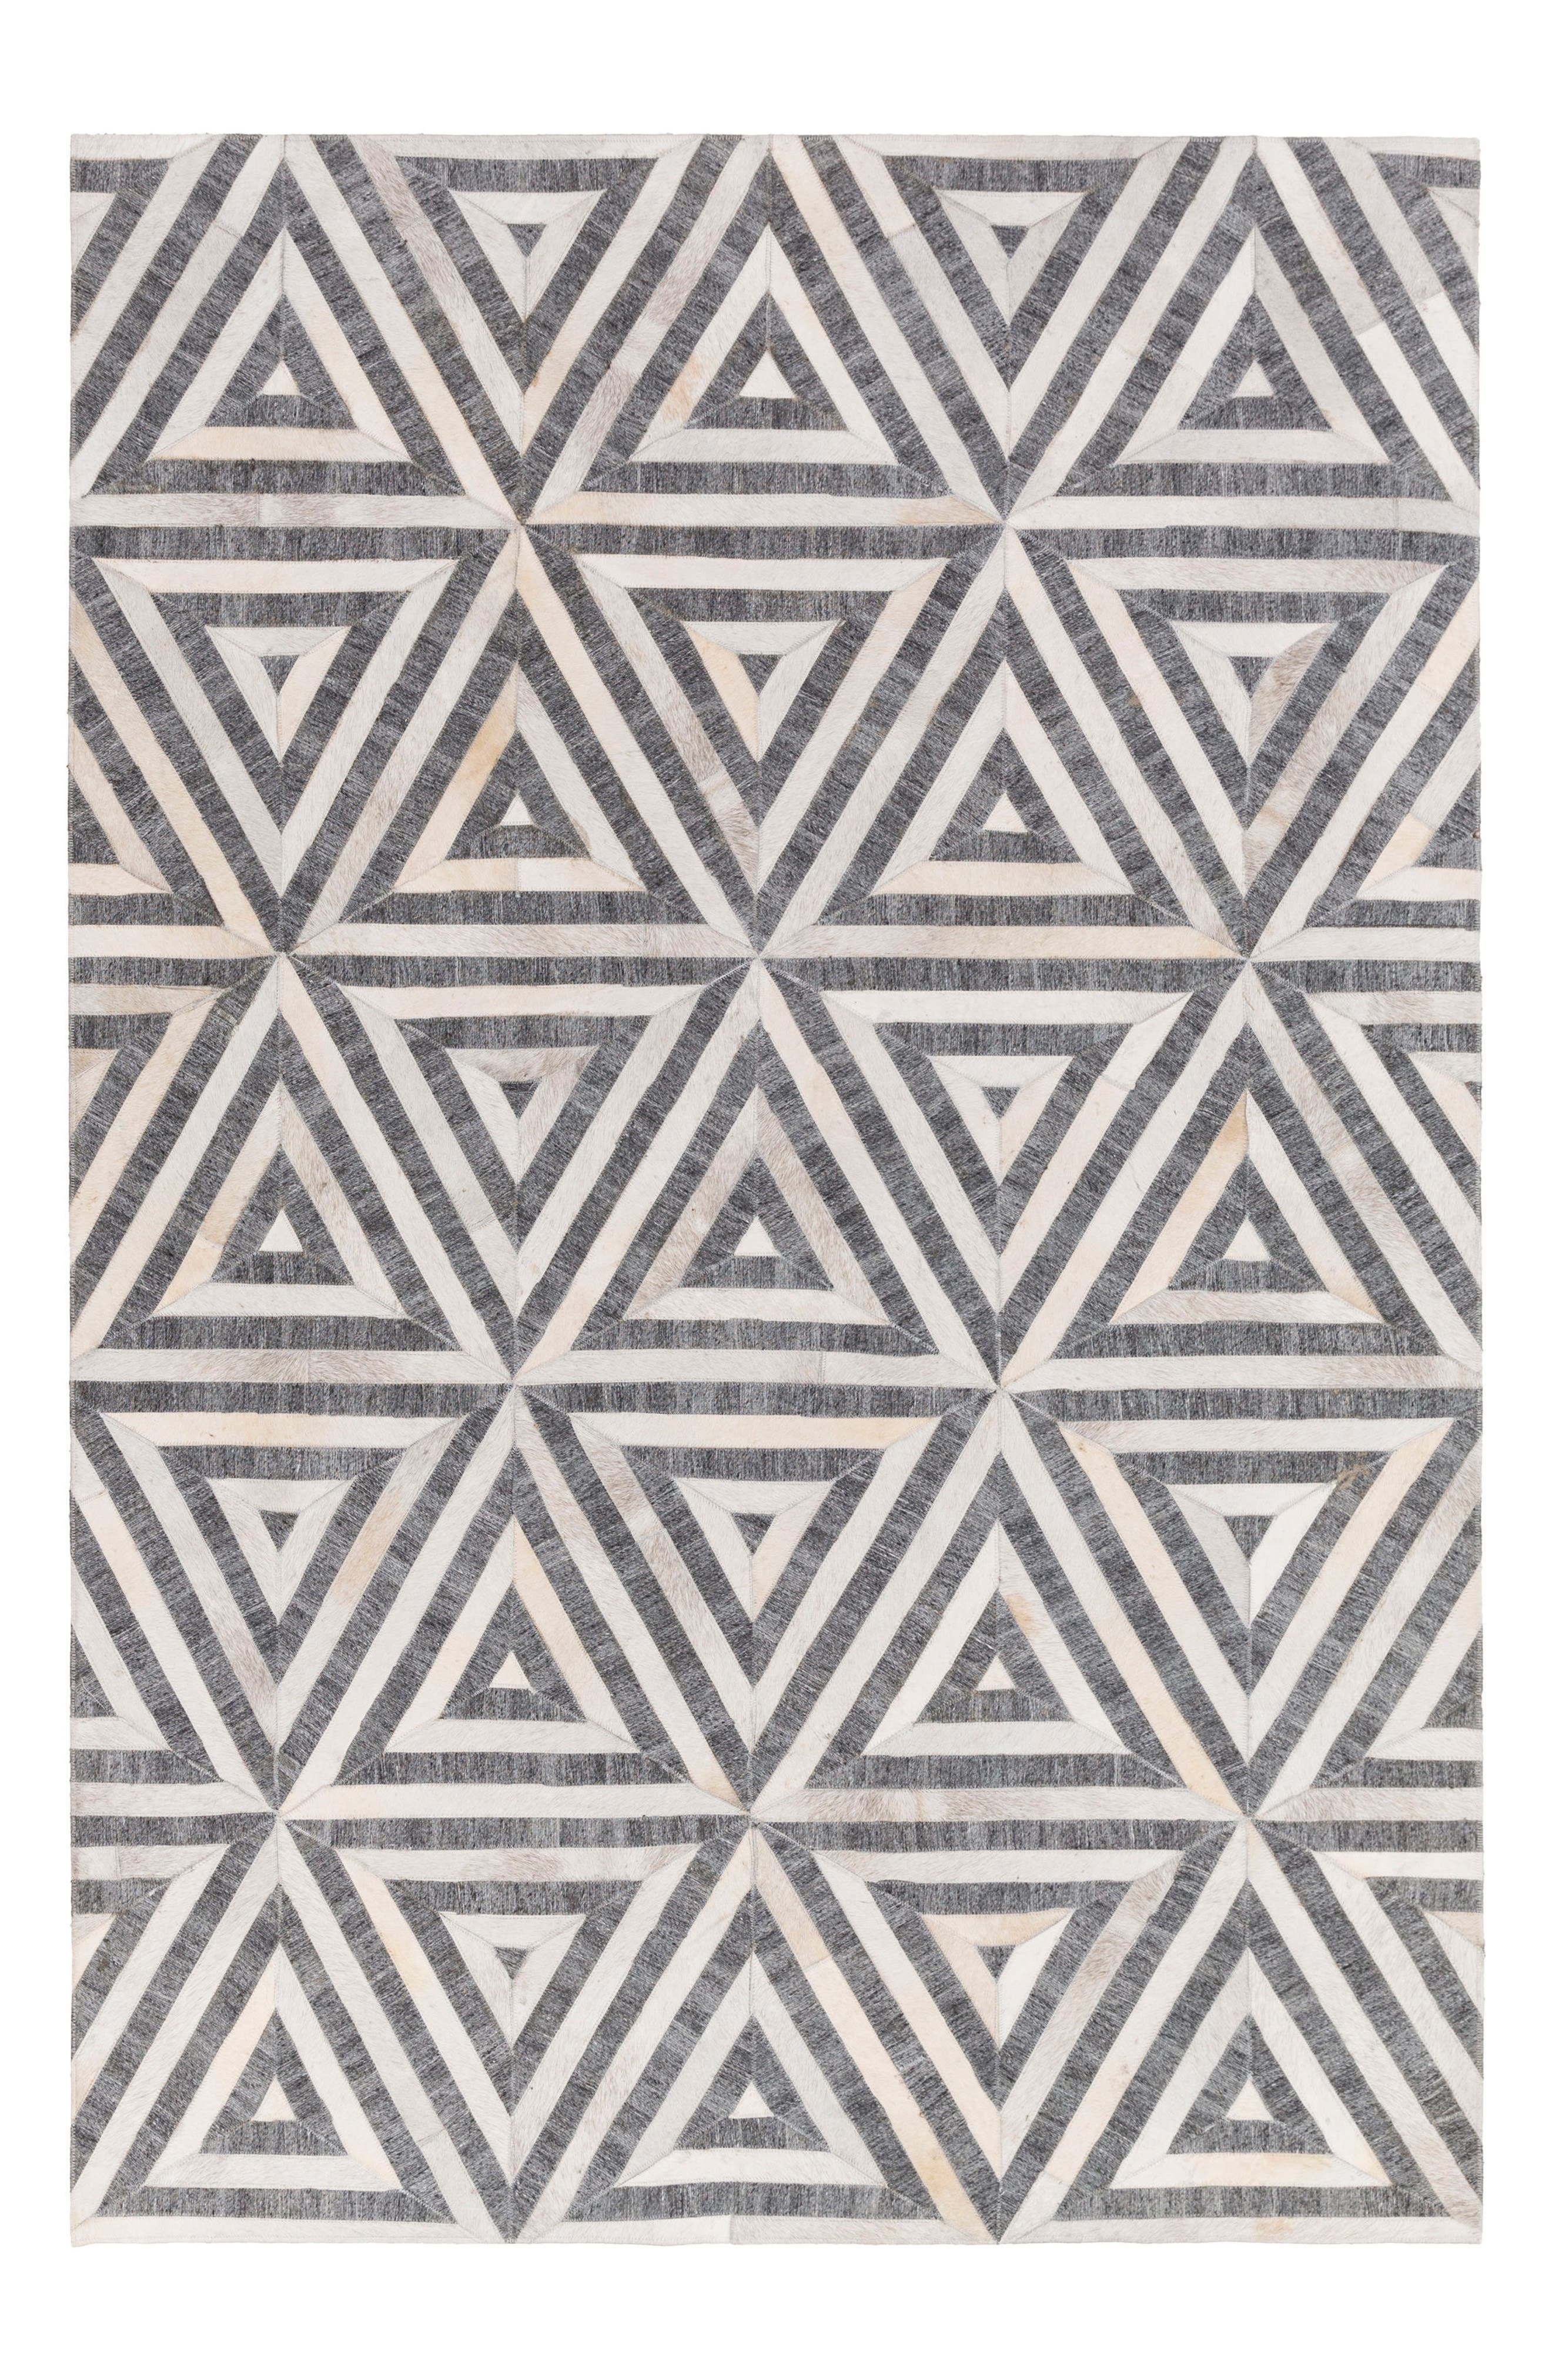 Medora Sophia Genuine Calf Hair Rug,                         Main,                         color,